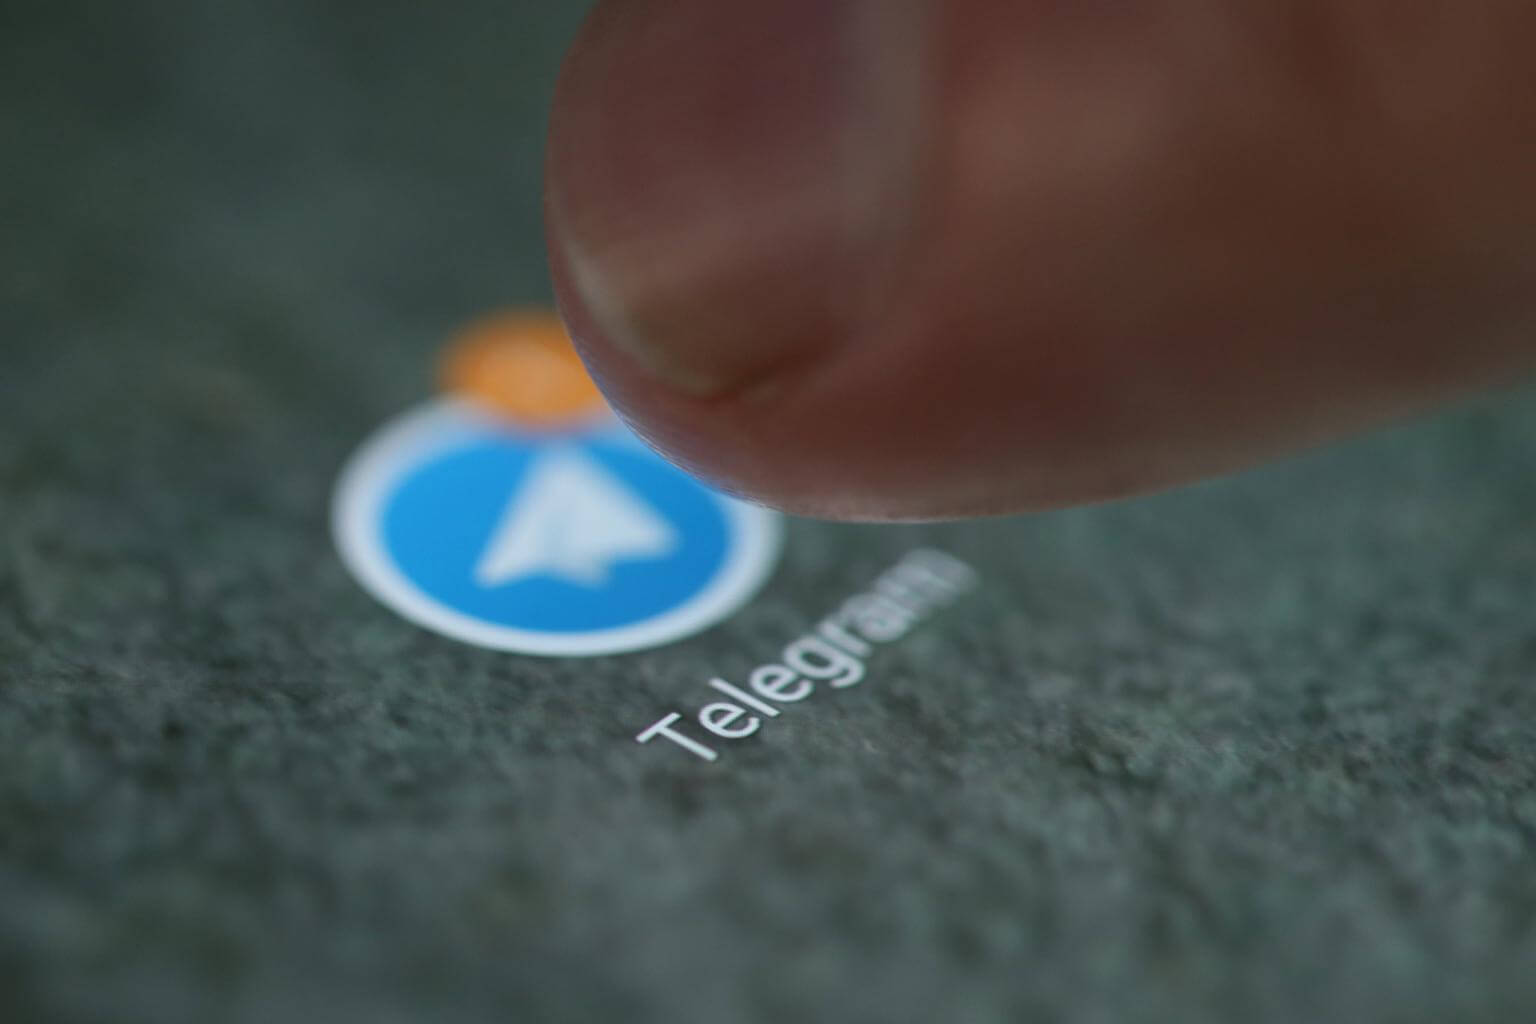 Russia Tries More Precise Technology to Block Telegram